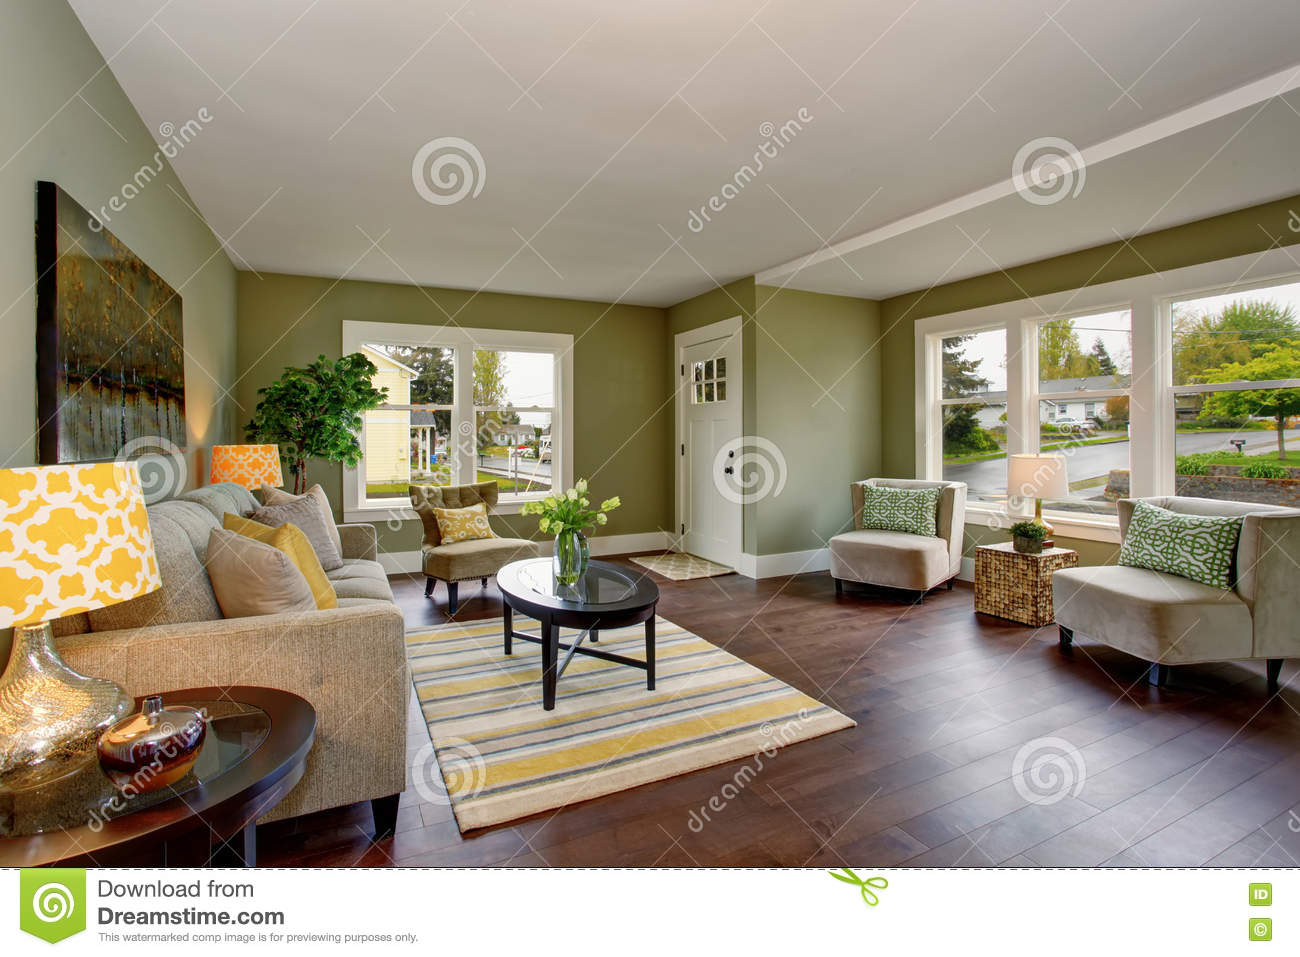 Living Room Interior With Green Walls Hardwood Floor And